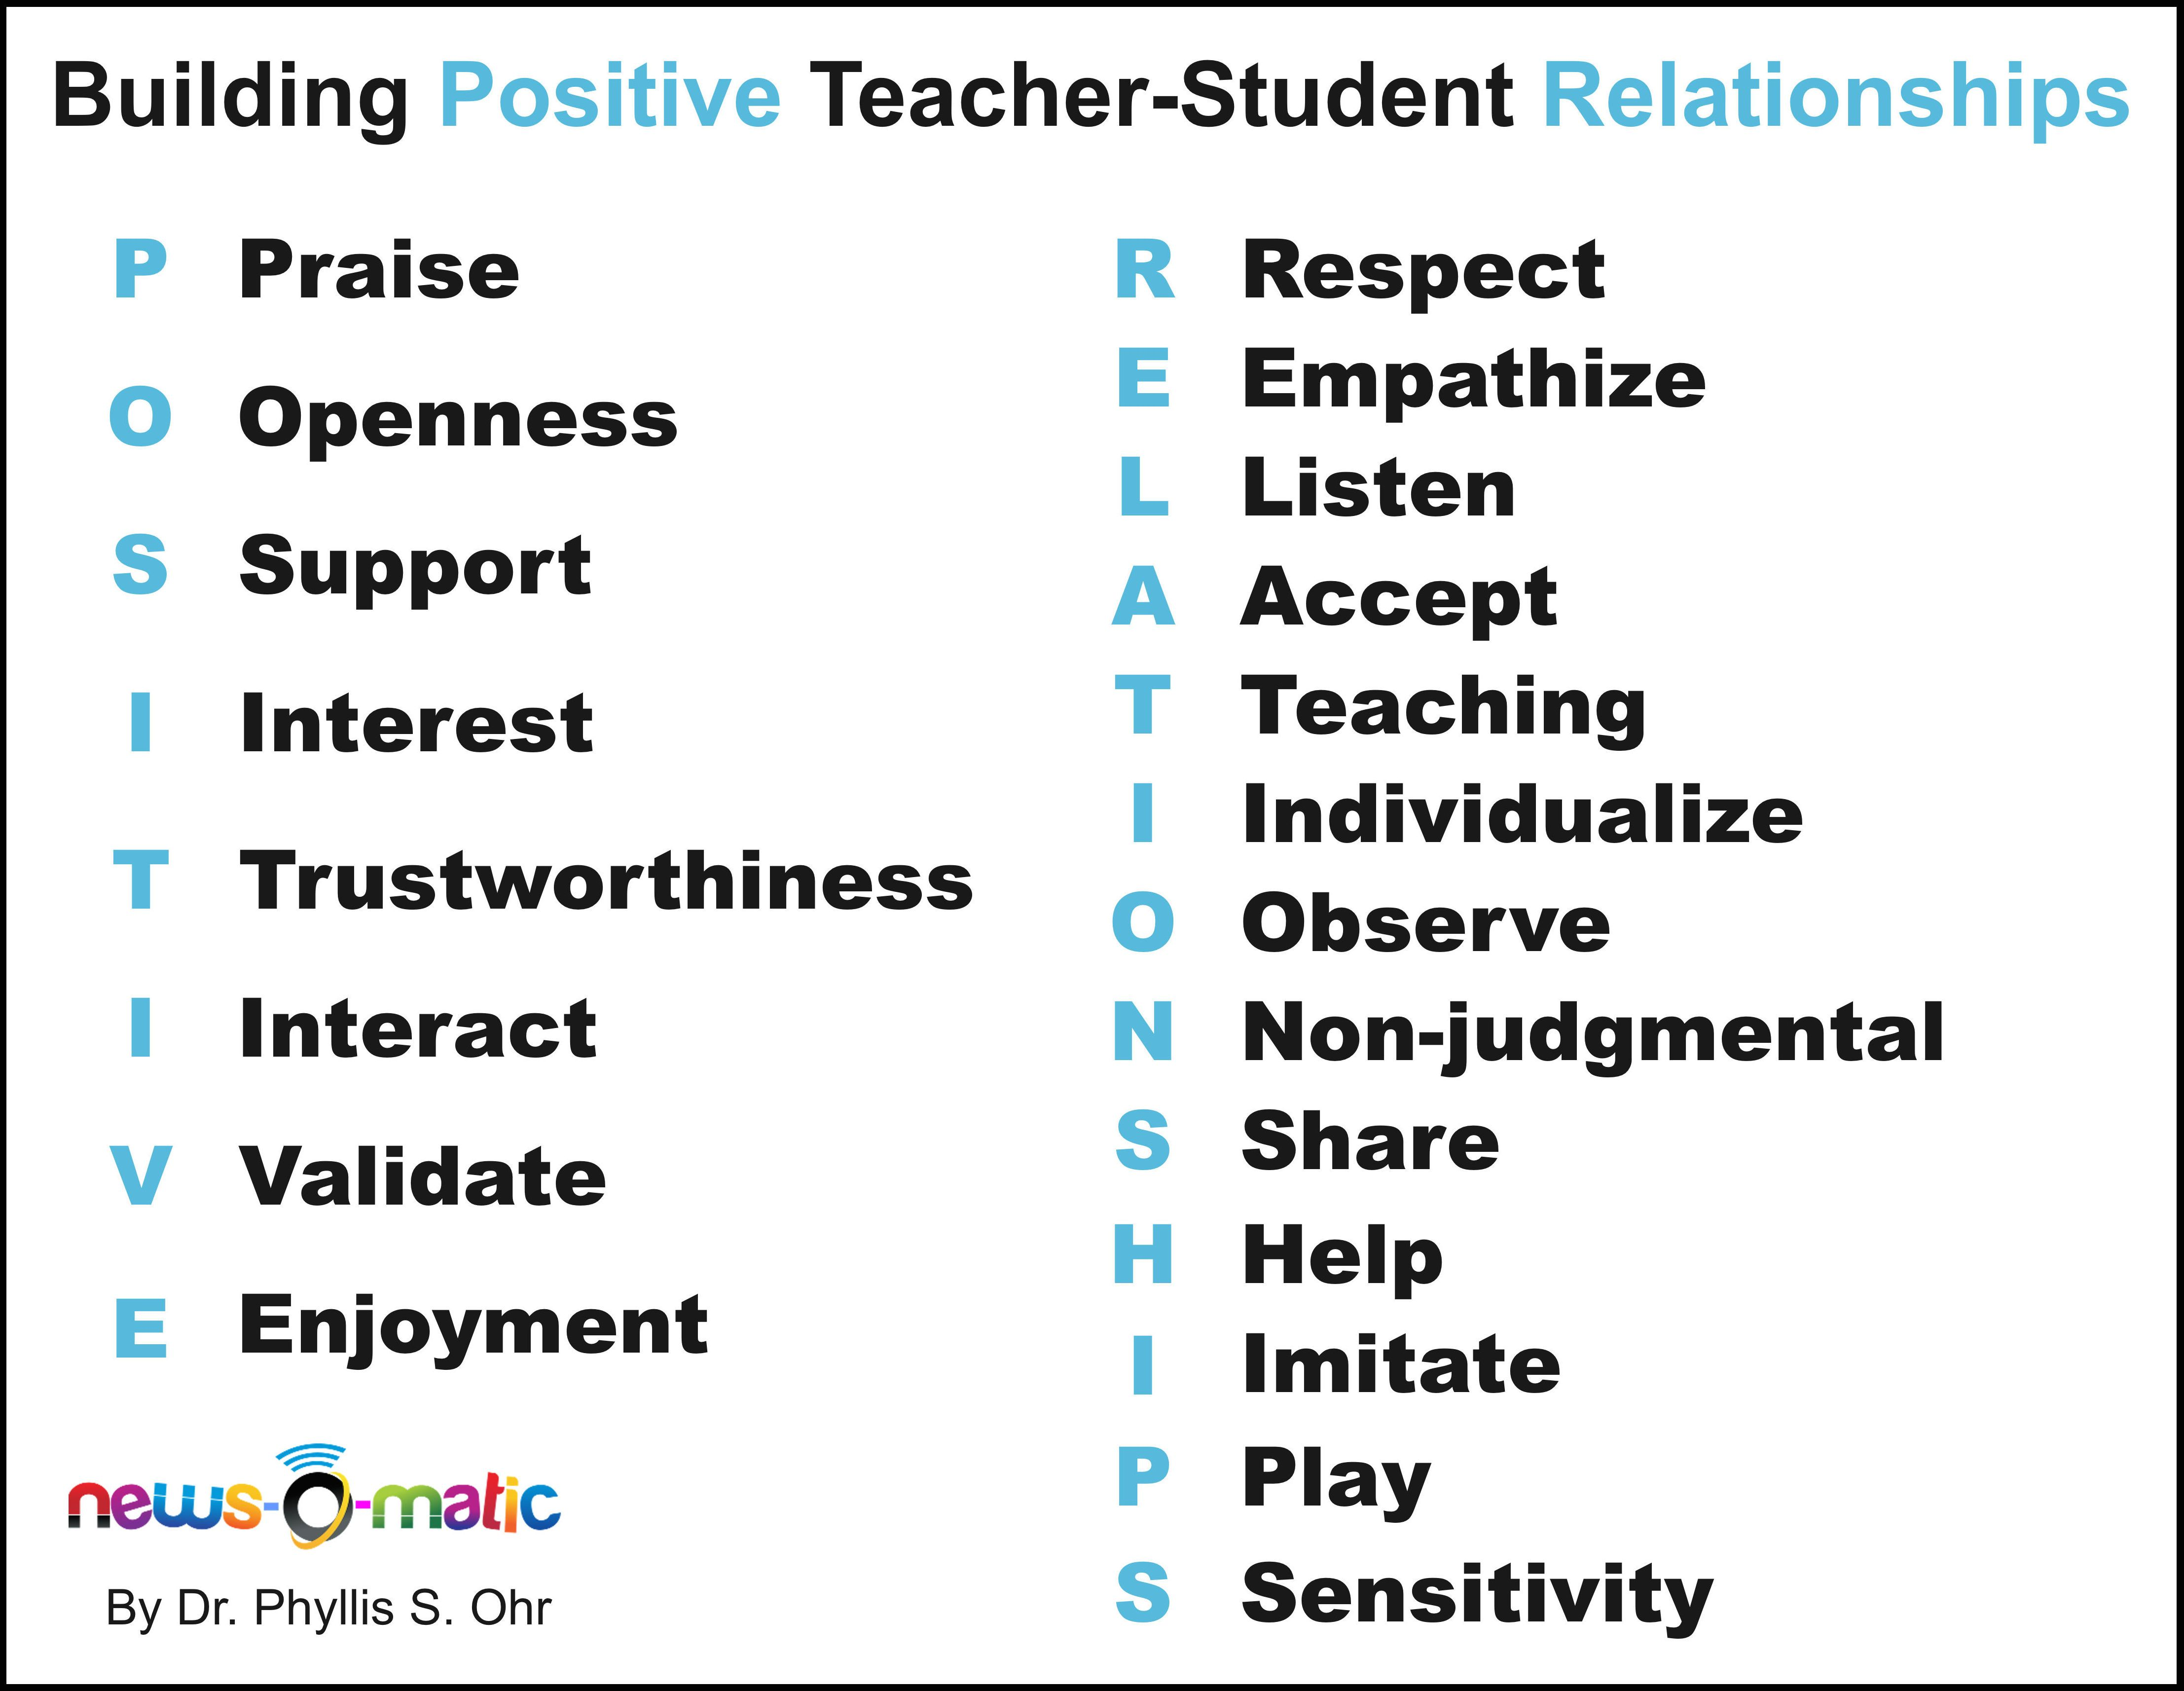 How To Foster A Positive Relationship With Students Dr